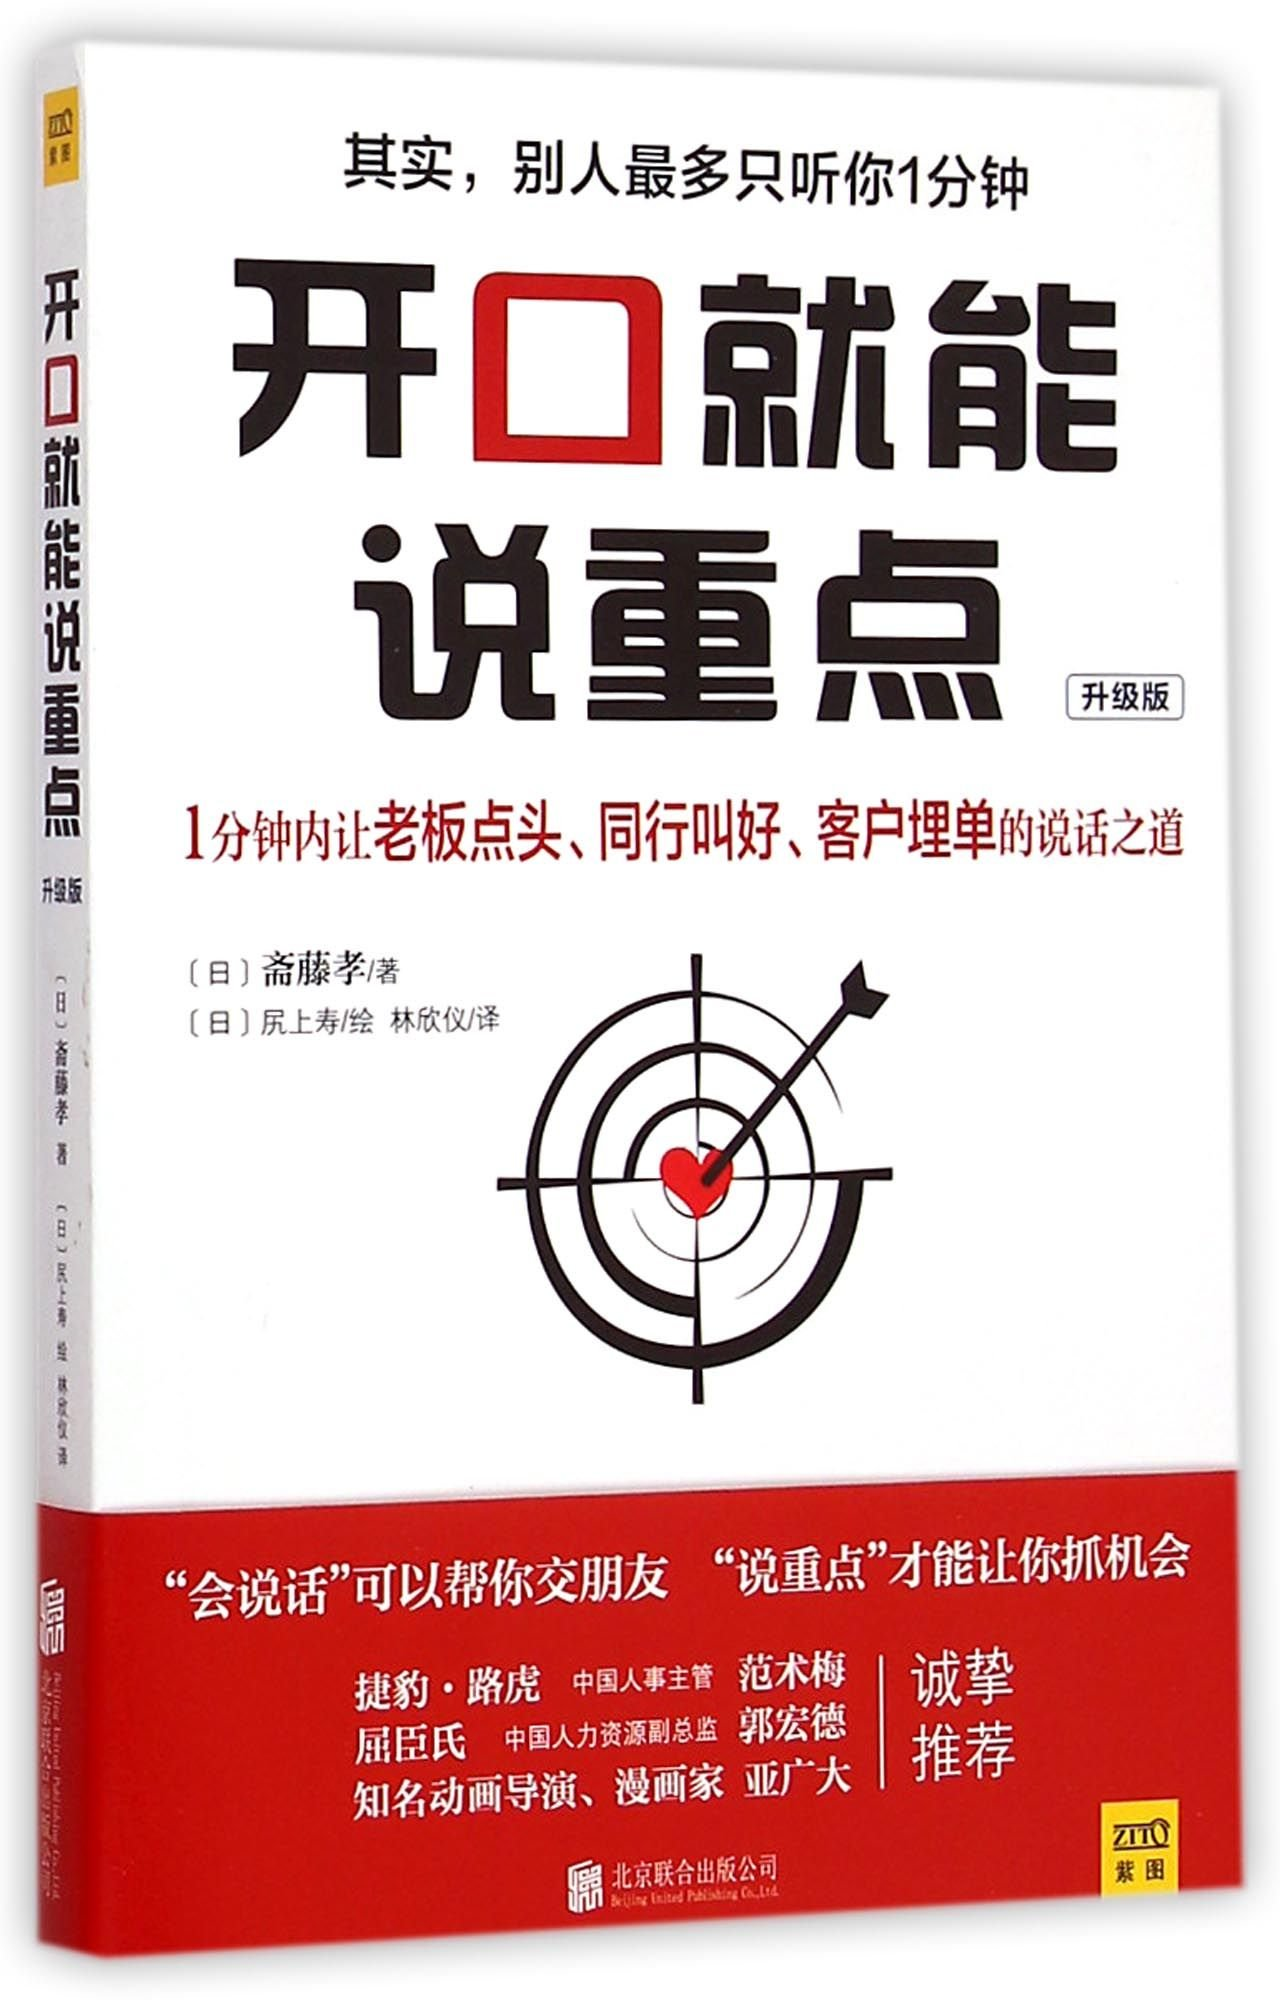 Read Online Get to the Point When Open the Mouth (Upgrade) (Chinese Edition) ebook